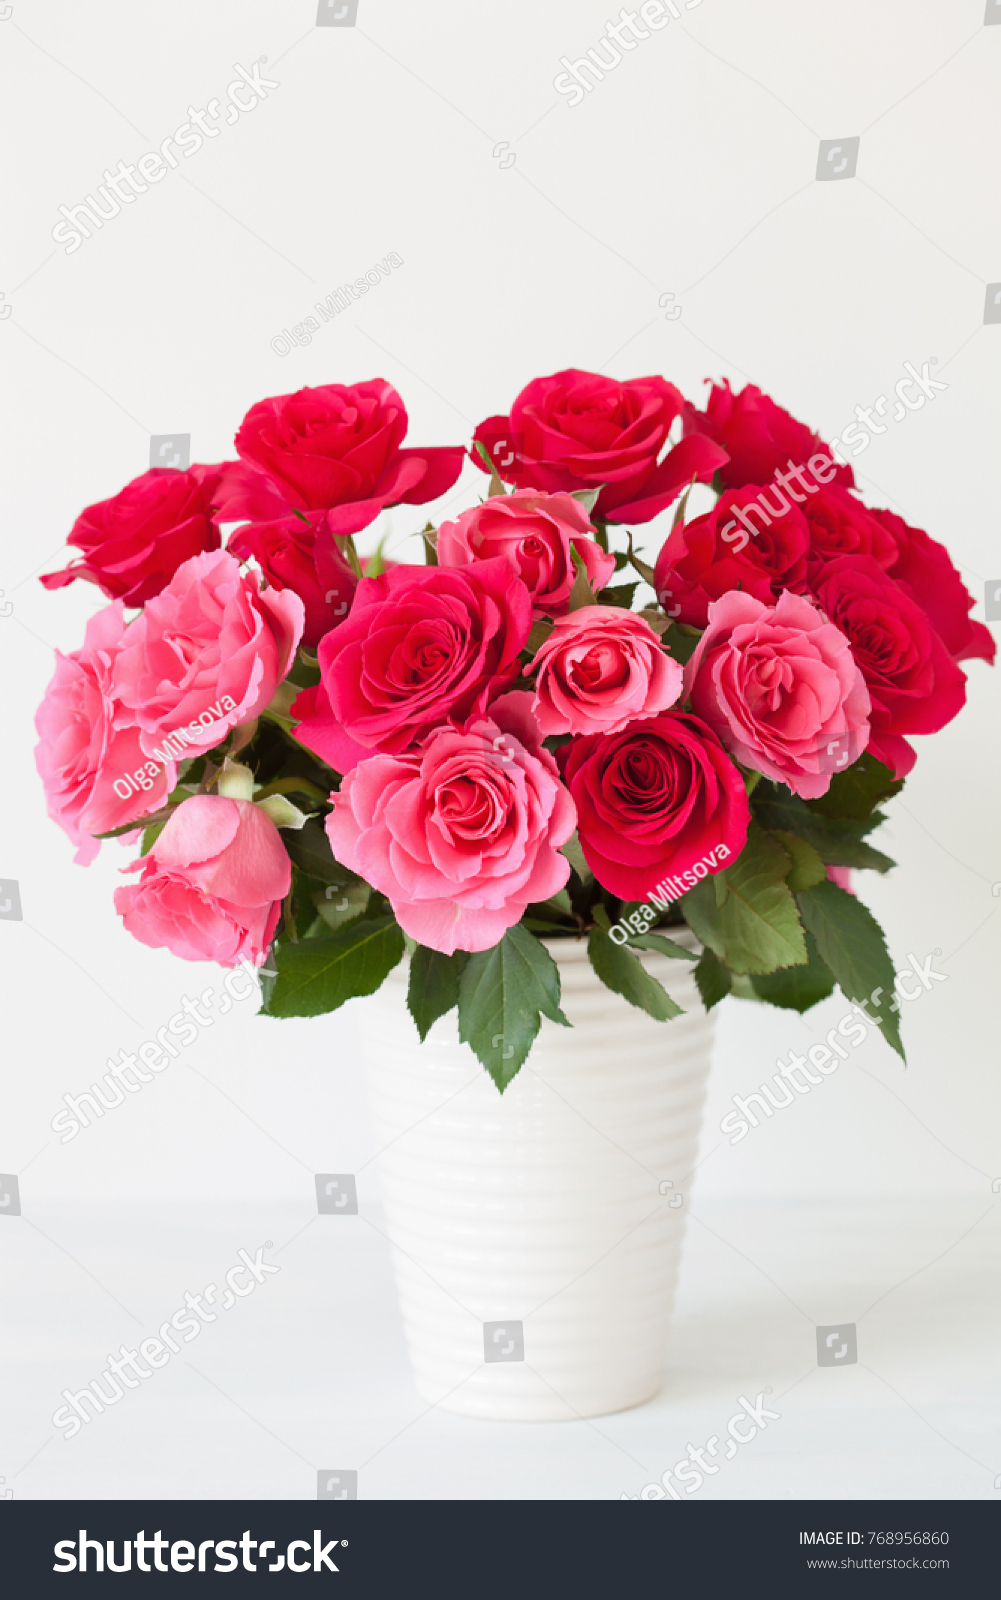 Beautiful Red Rose Flowers Bouquet Vase Stock Photo (Safe to Use ...